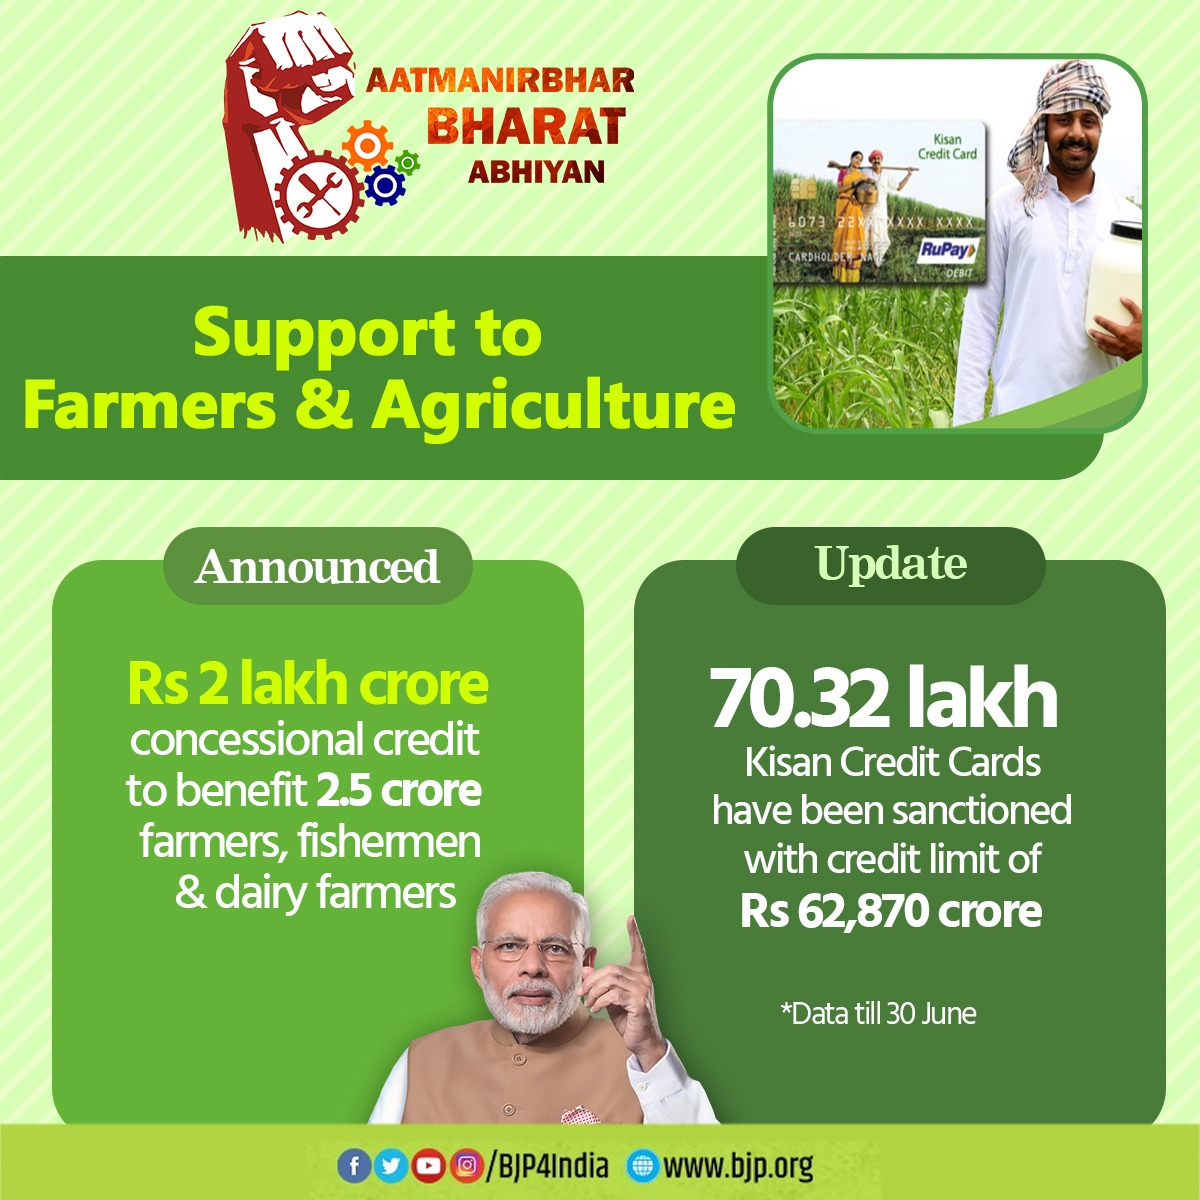 70.32 lakh kisan credit cards have been sanctioned with credit limit of Rs 62,870 crore. #AatmanirbharBharat